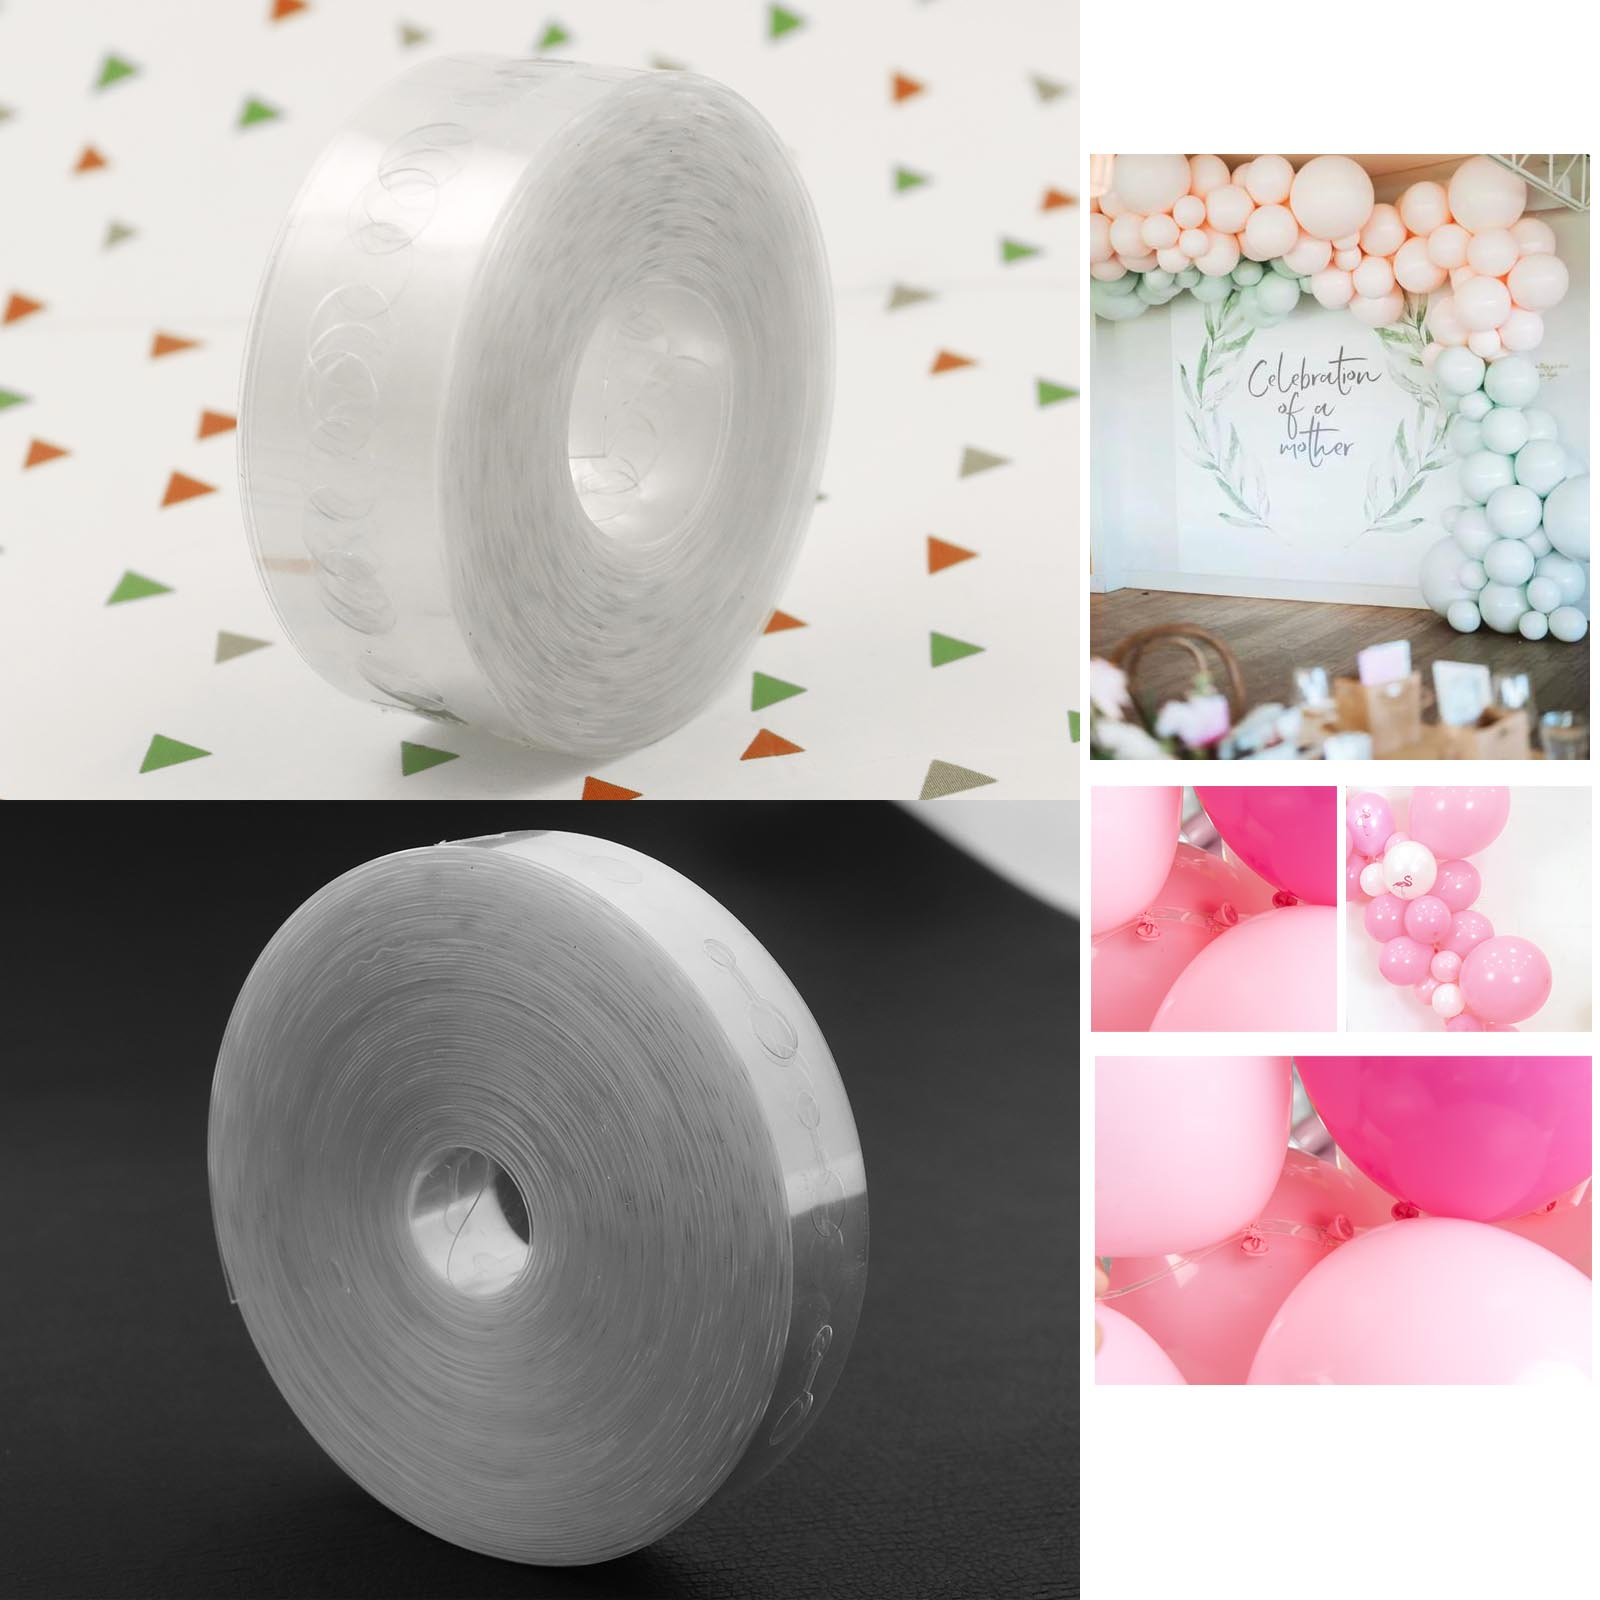 20M Balloon Connect Chains PVC Wedding Party Birthday Xmas Baby Shower DIY